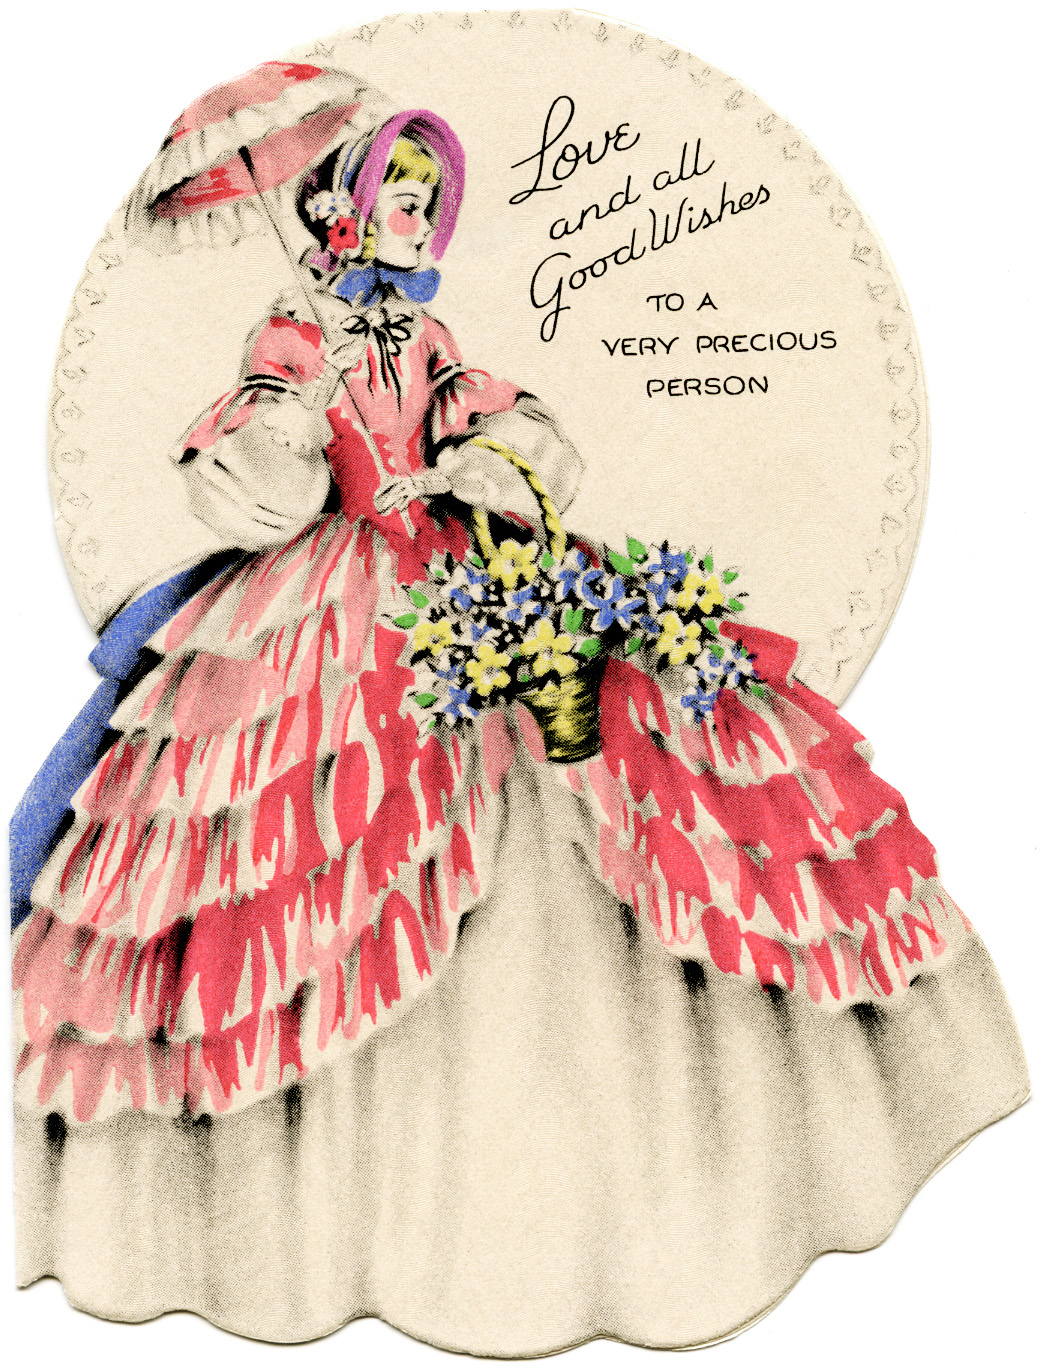 Free Vintage Clip Art Victorian Lady In Ruffled Pink Dress And Parasol Birthday Greeting Card